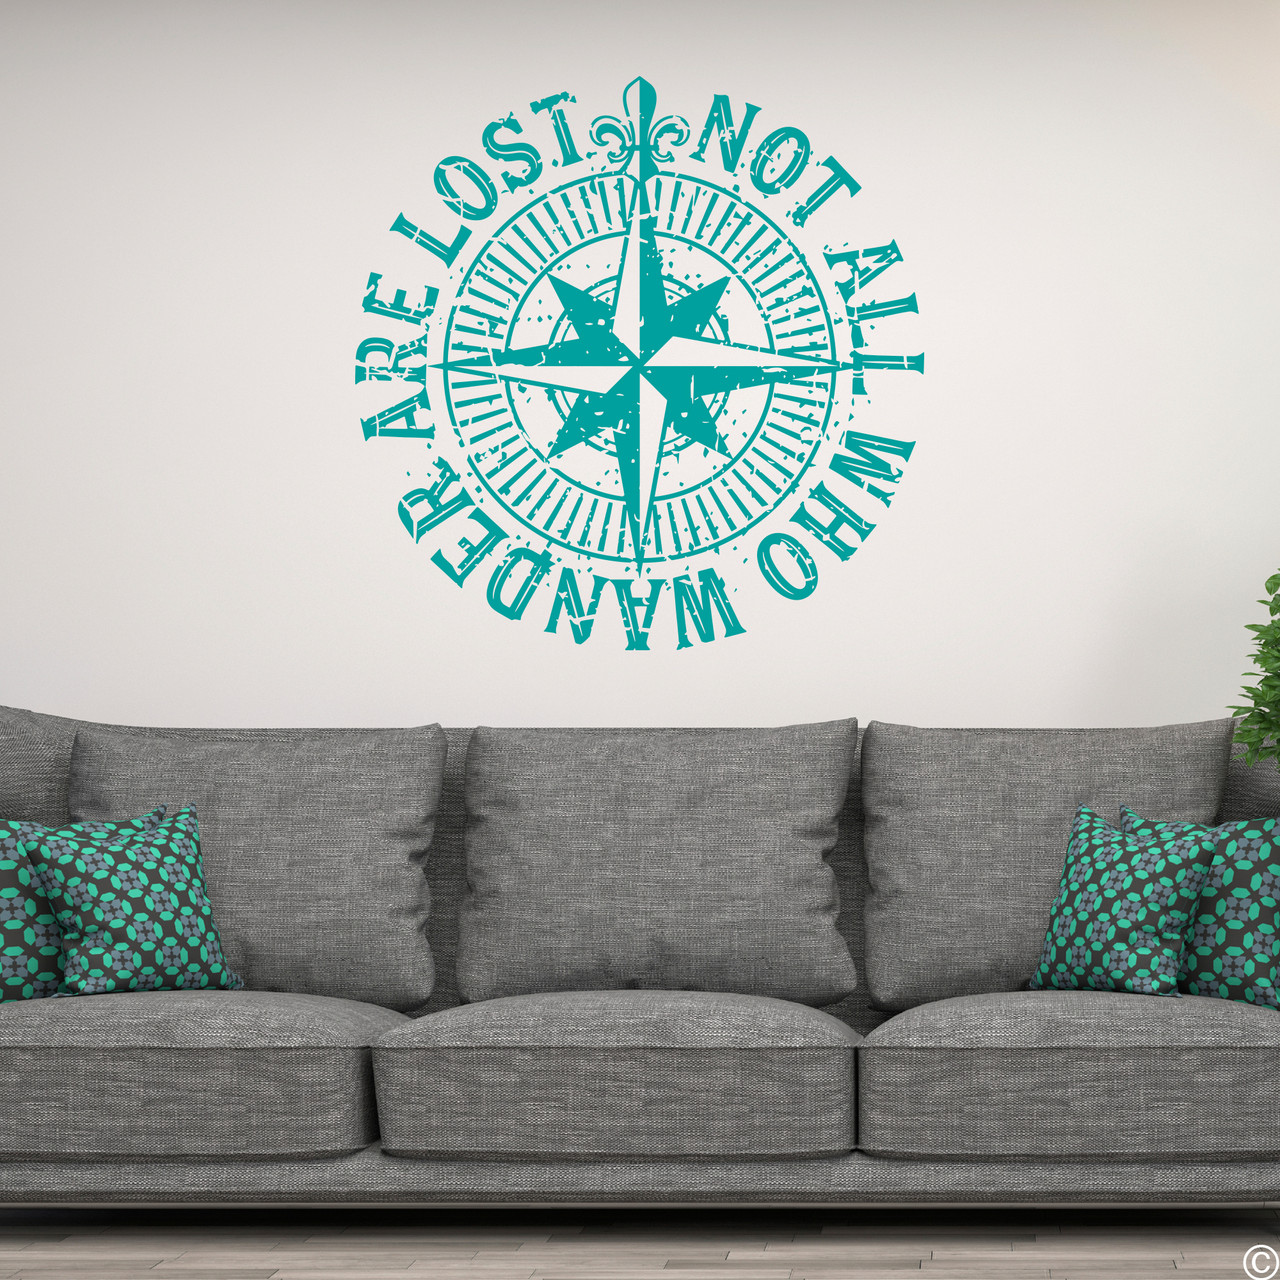 """The """"Not all who wander are lost"""" distressed compass rose wall decal shown here in turquoise vinyl."""